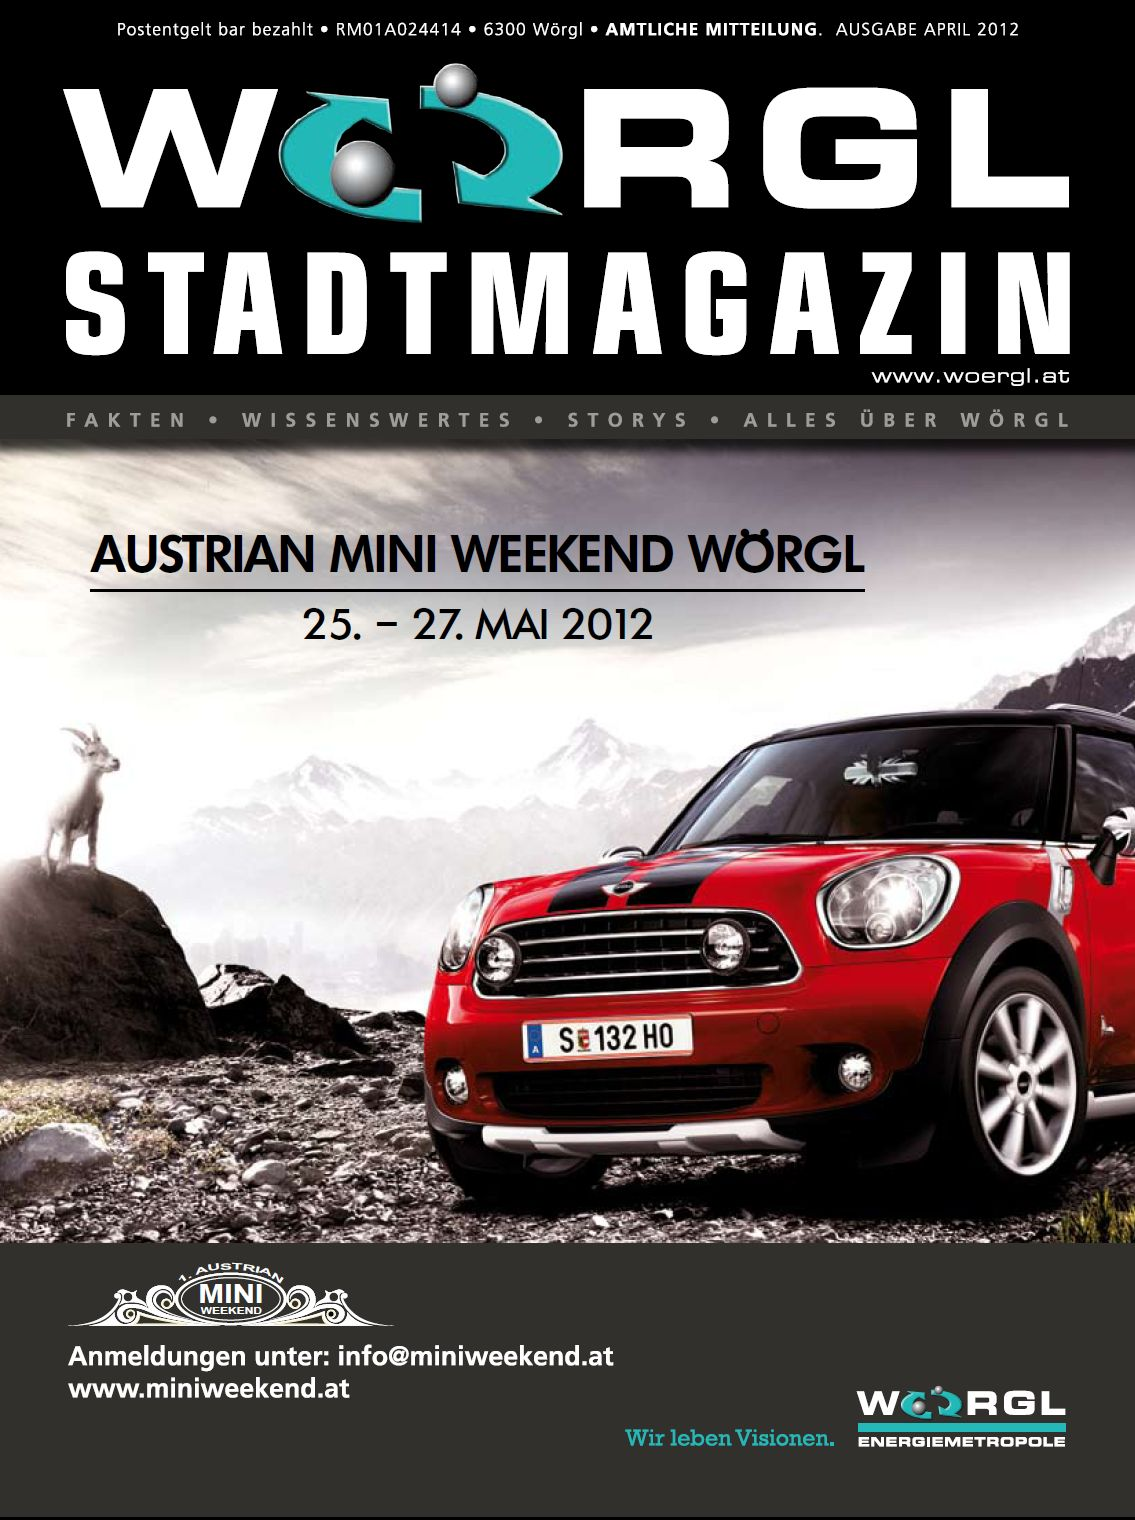 Wörgler Stadtmagazin April